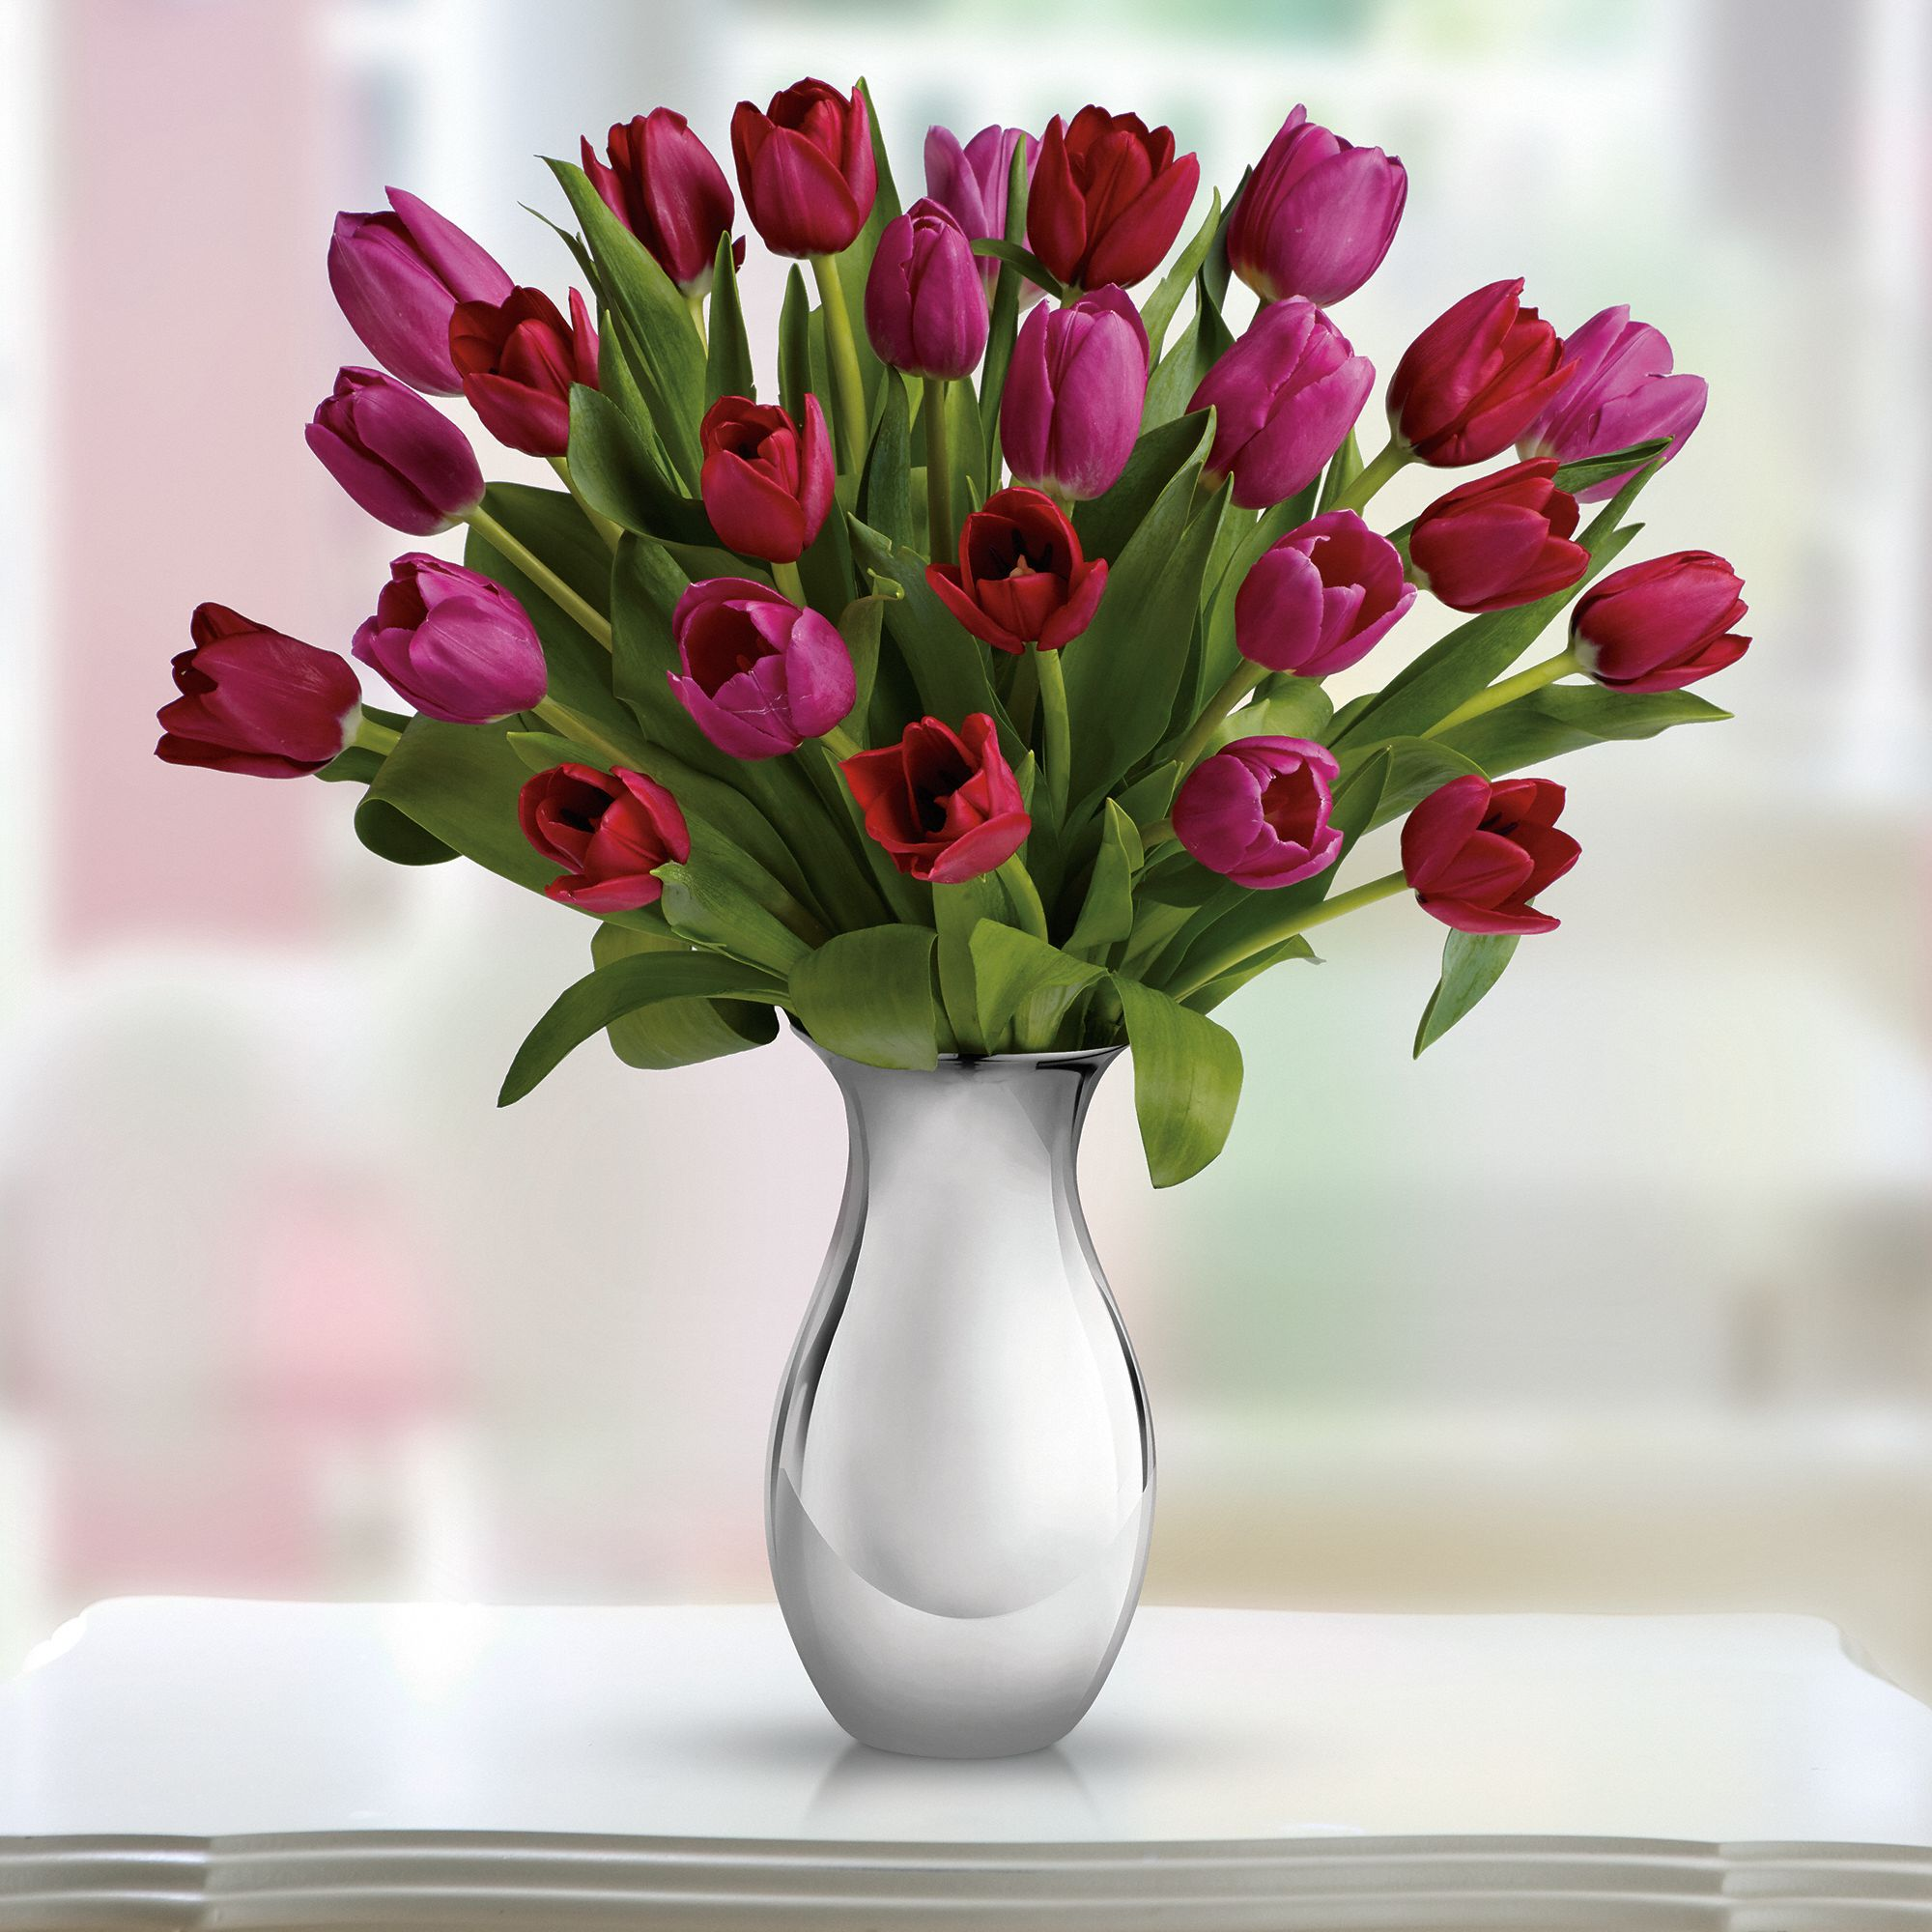 Teleflora's Sweet Surrender Bouquet of tulips